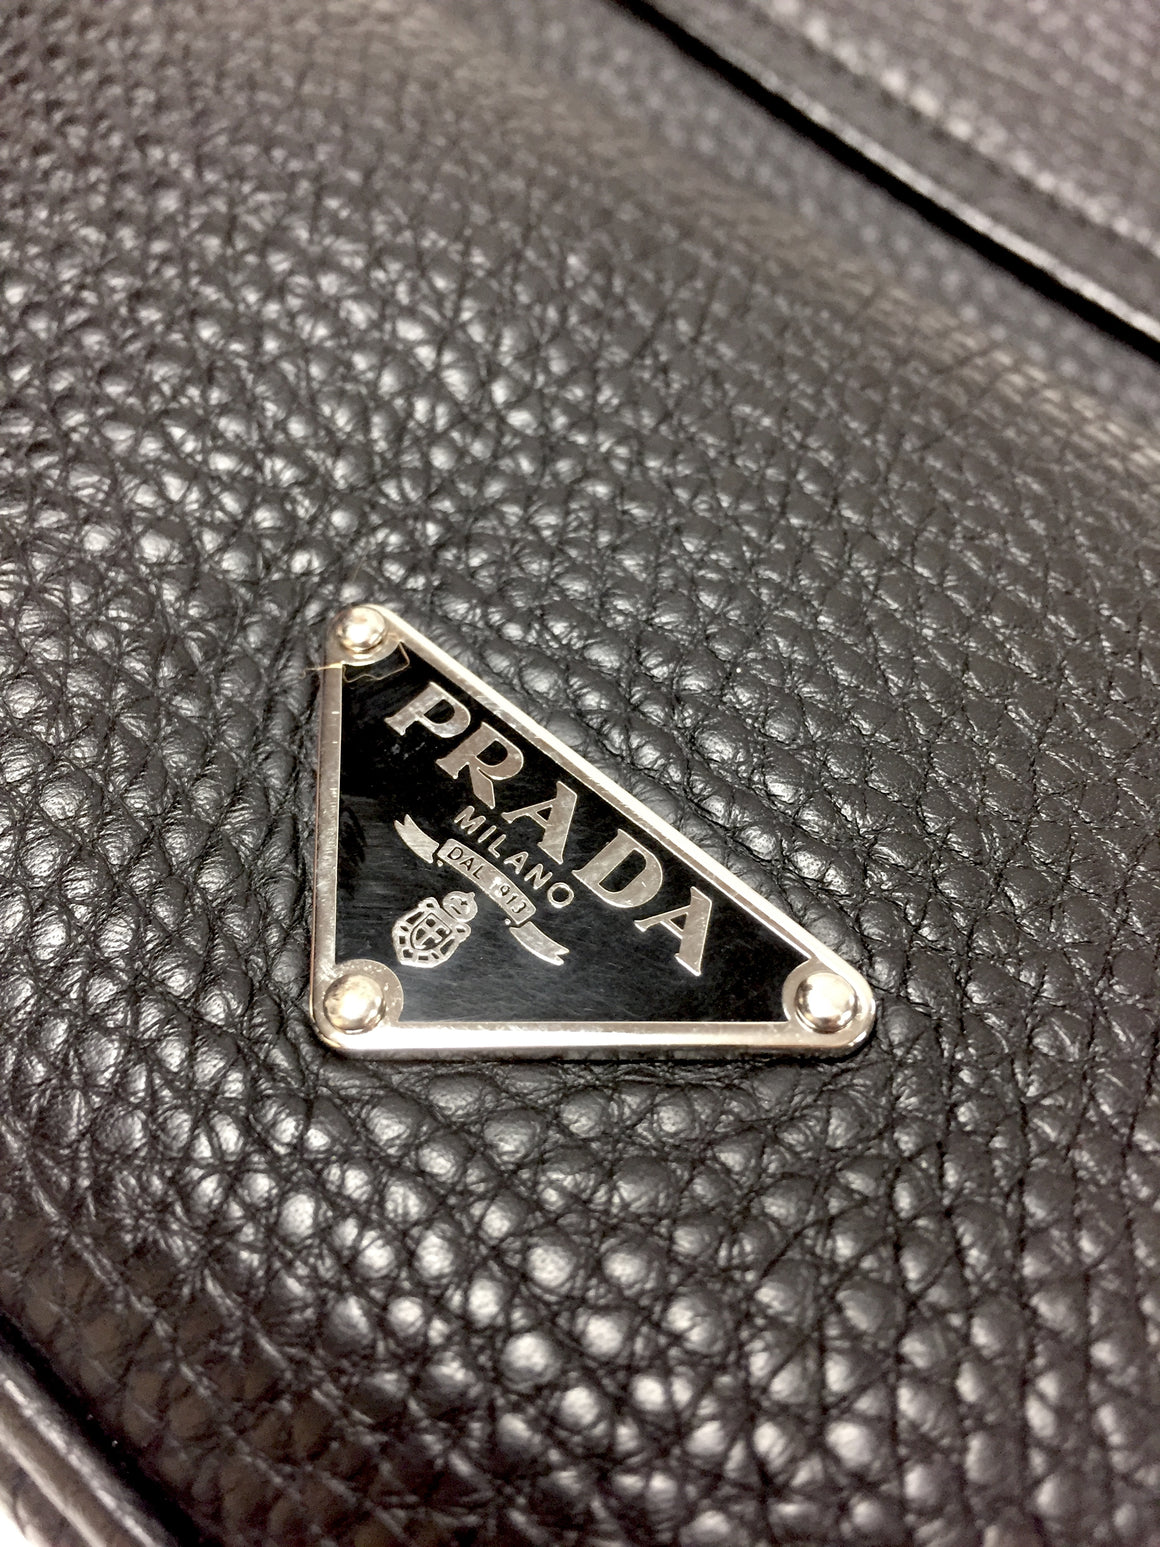 PRADA  Black Caviar Leather Silvertone Metal Handle Shoulder Hand Bag